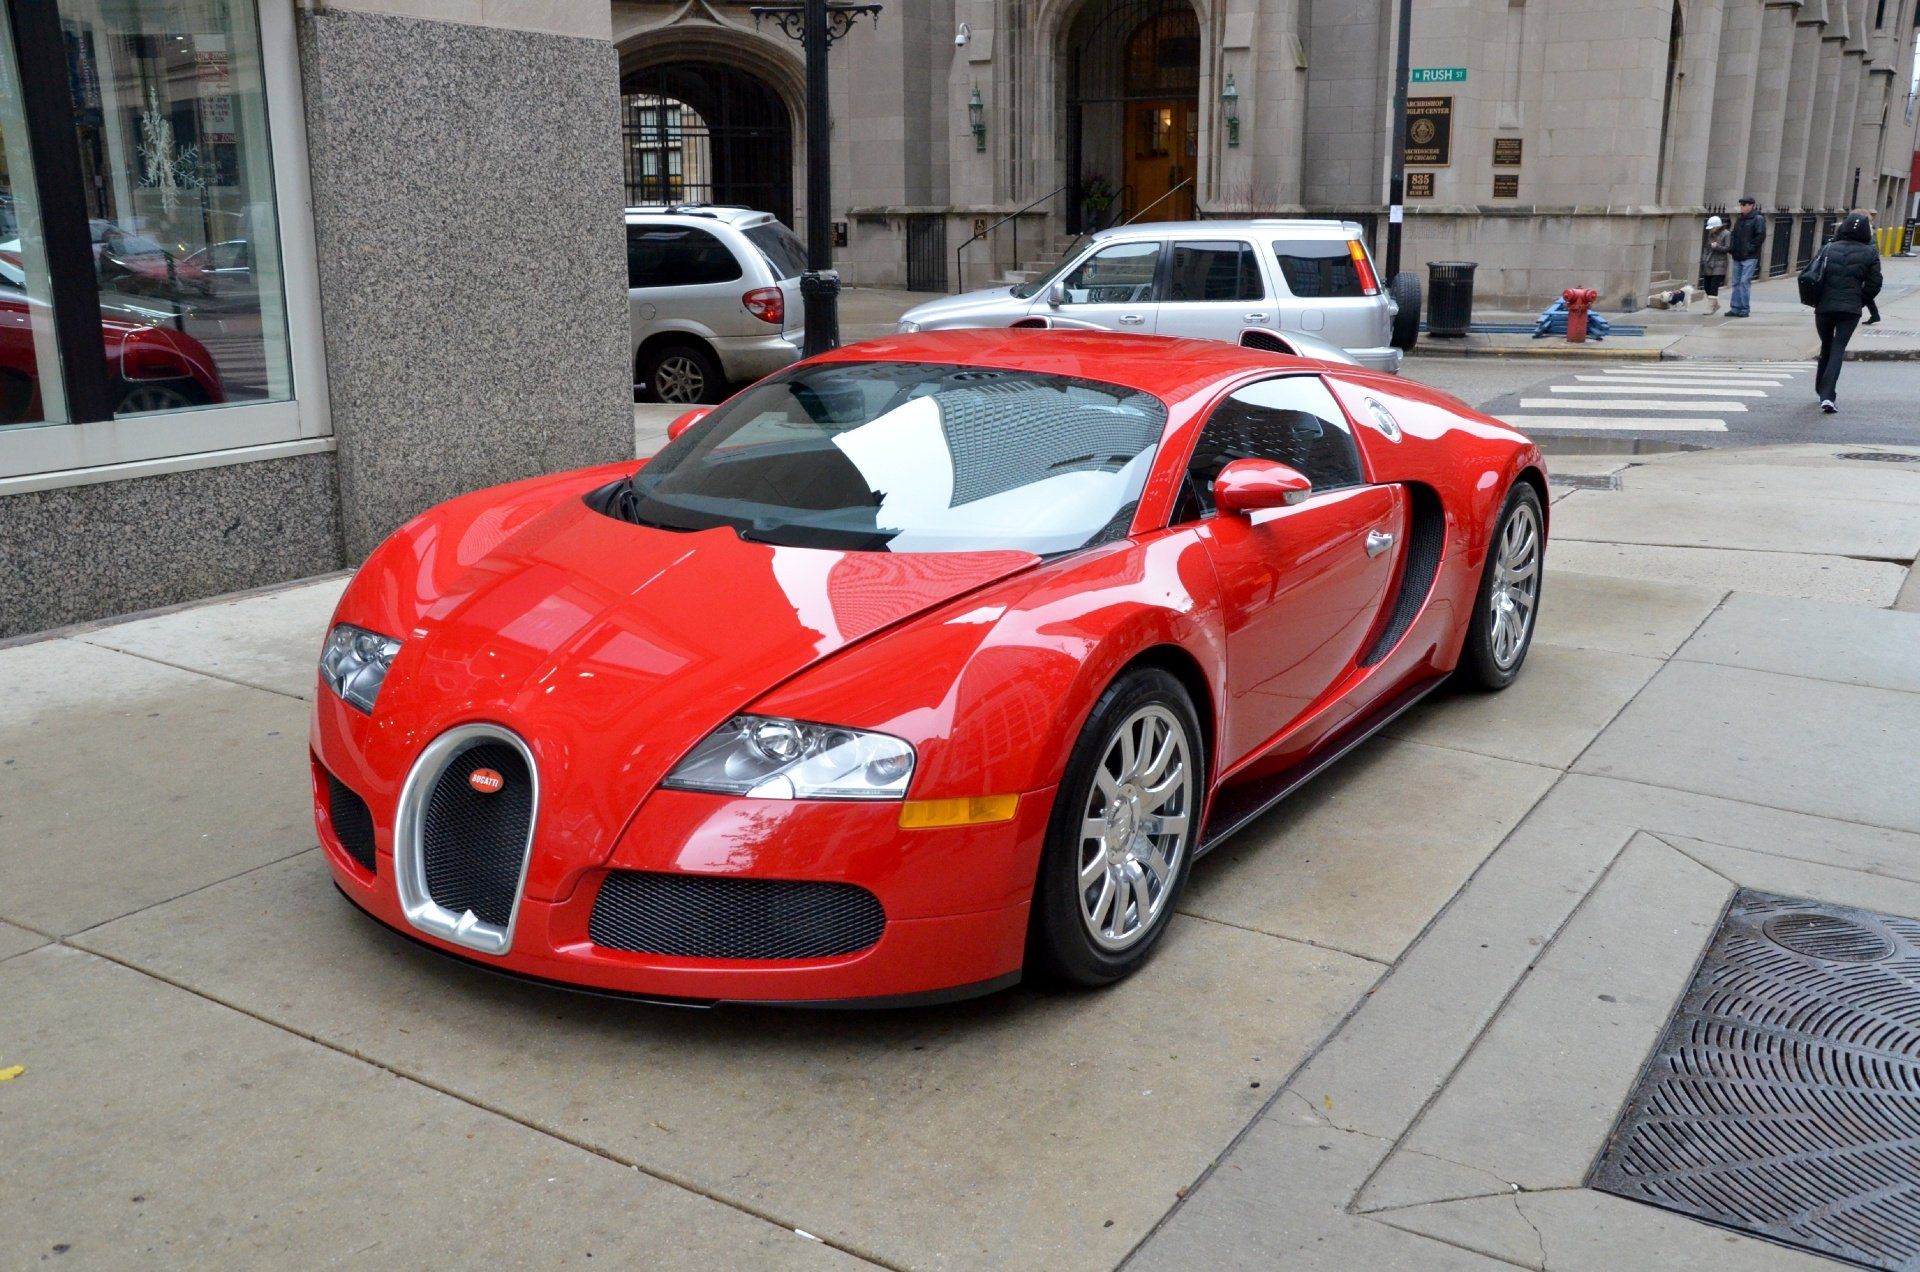 2008 bugatti veyron 16 4 red rouge rosso dreamcar exotic italian sportscar supercar wallpaper. Black Bedroom Furniture Sets. Home Design Ideas